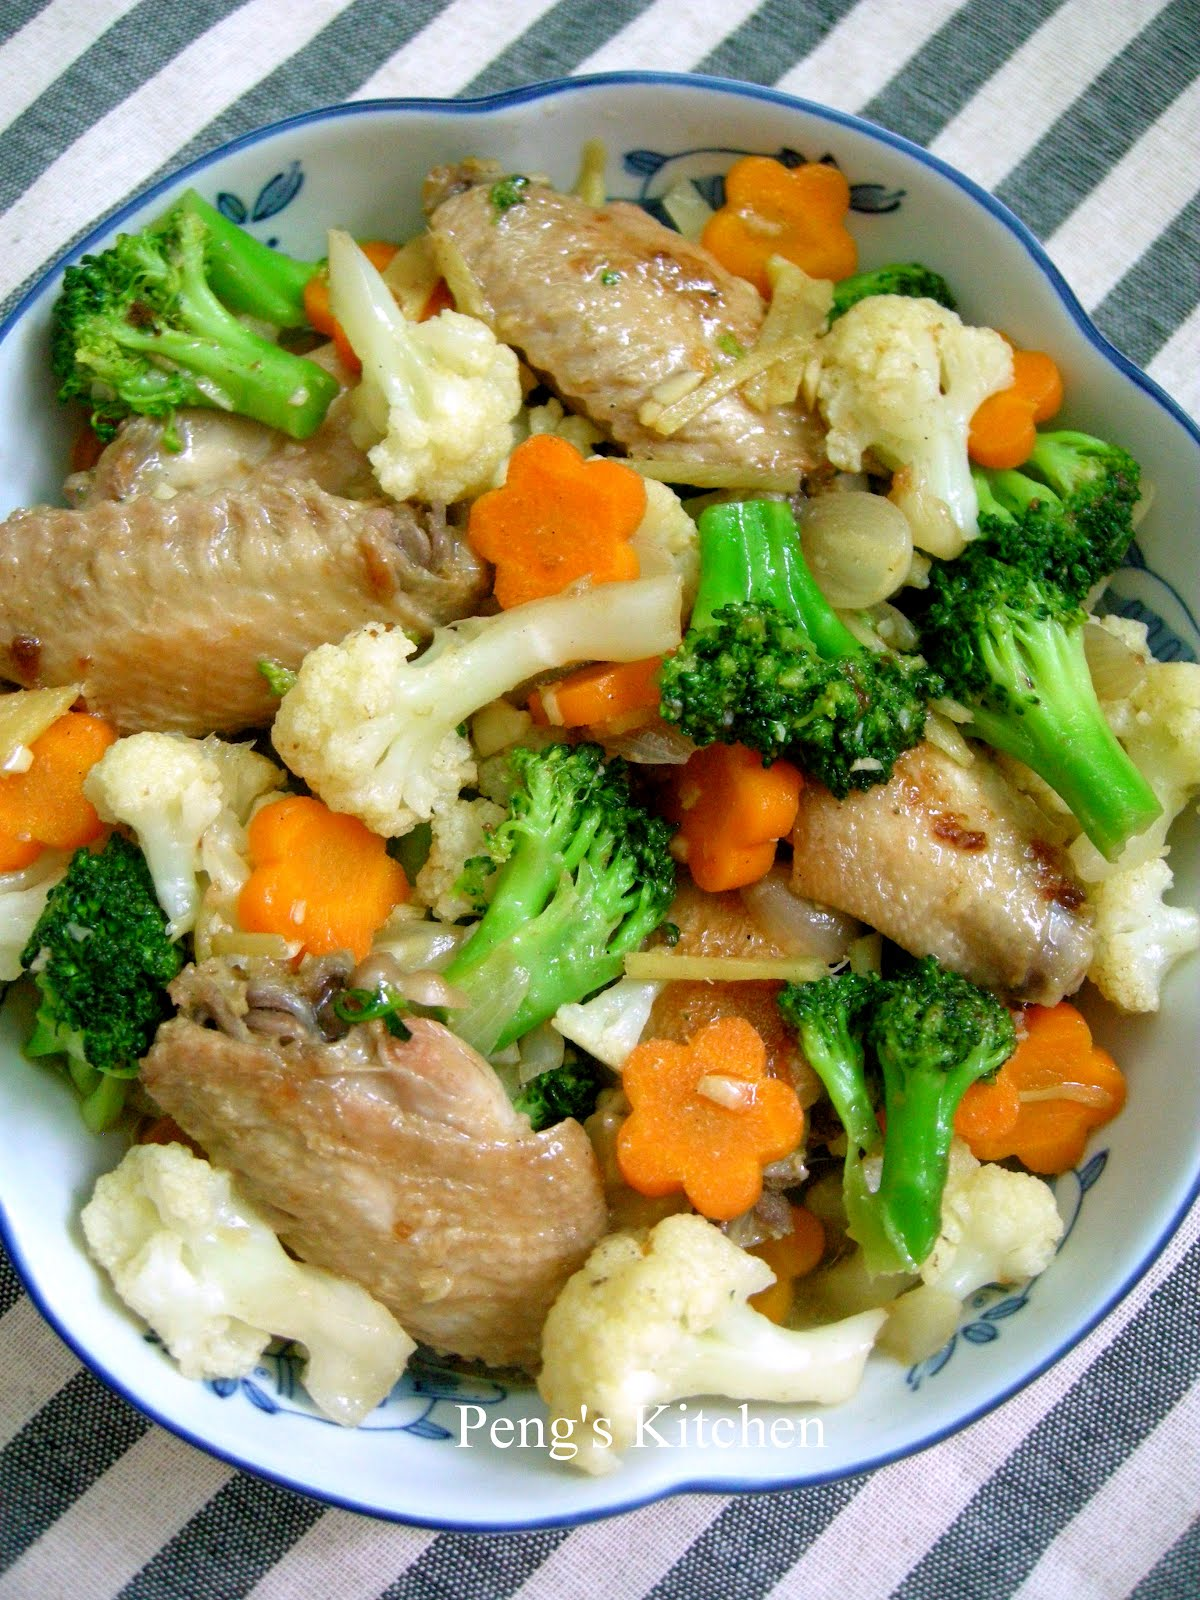 Peng S Kitchen Stir Fry Chicken Wings With Broccoli Cauliflower